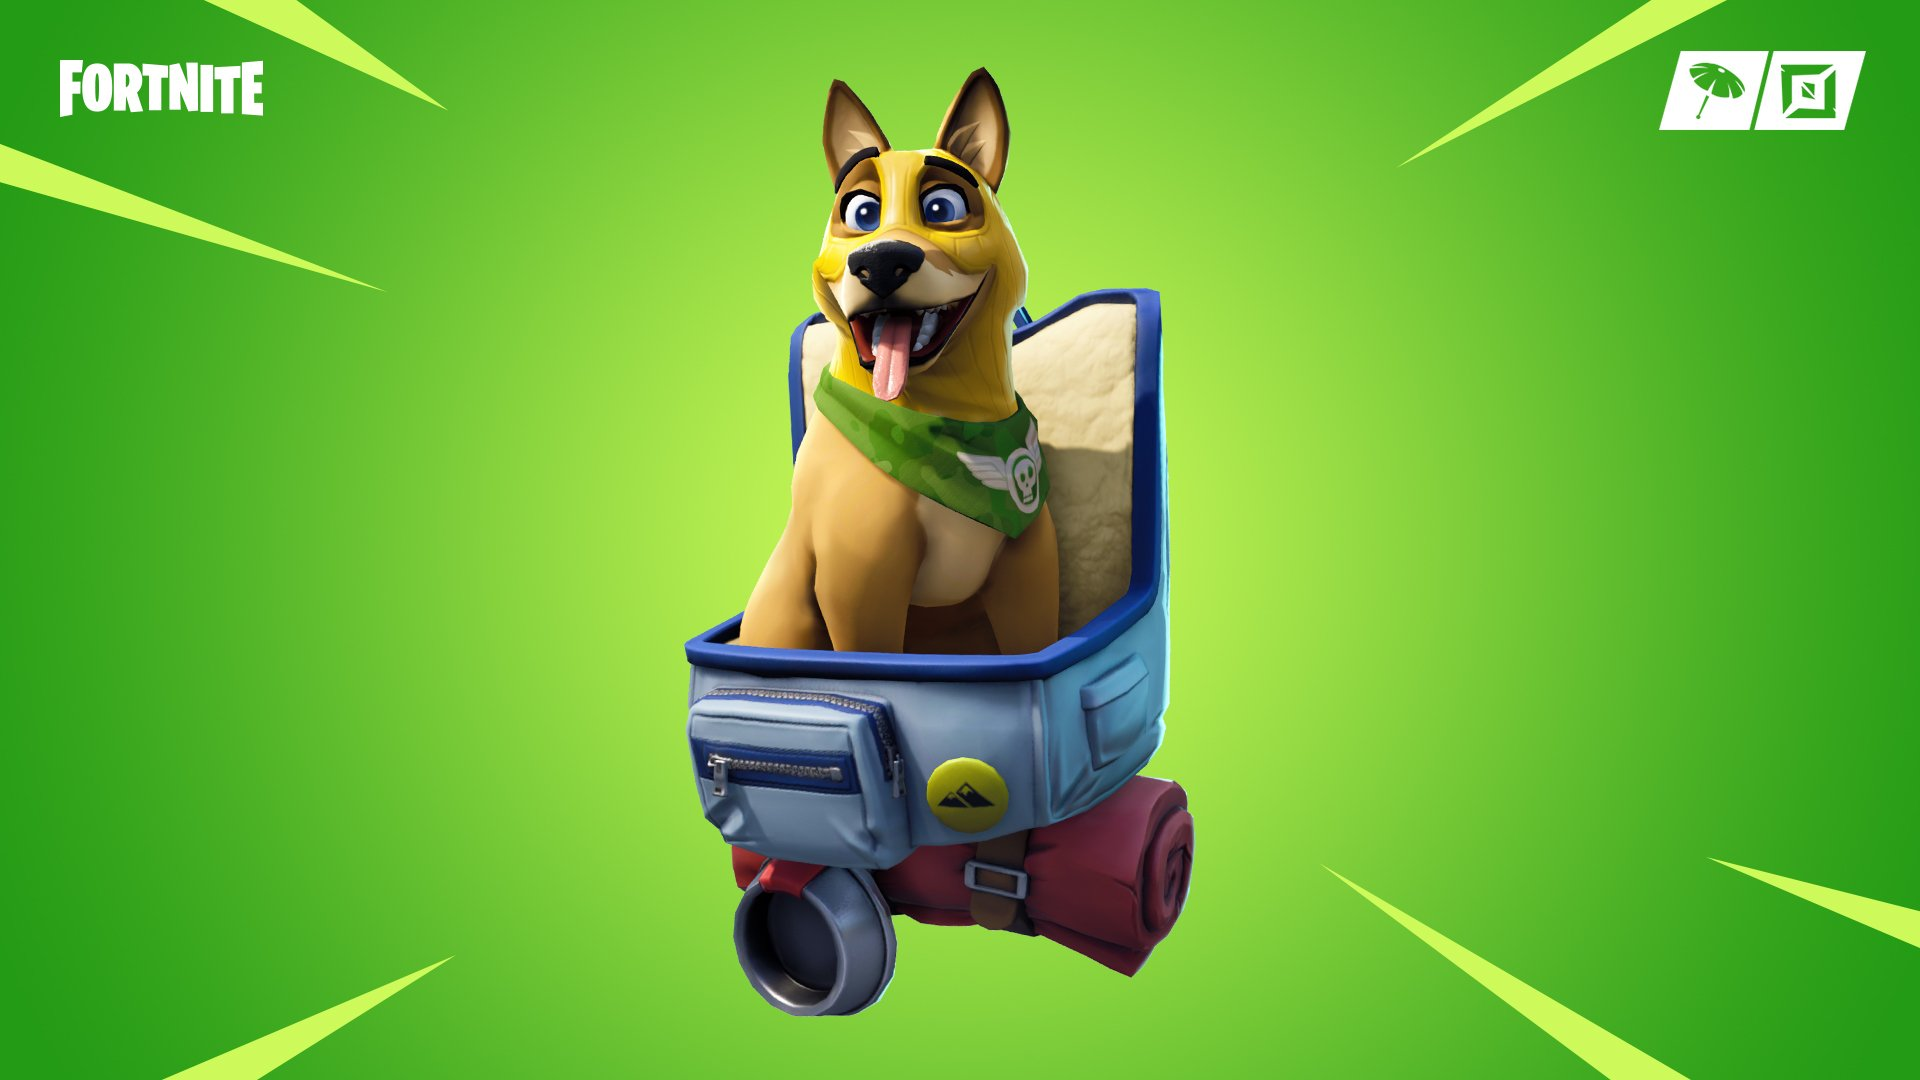 Epic tire 'lazily re-skinned' Fortnite pet from sale, offers refunds